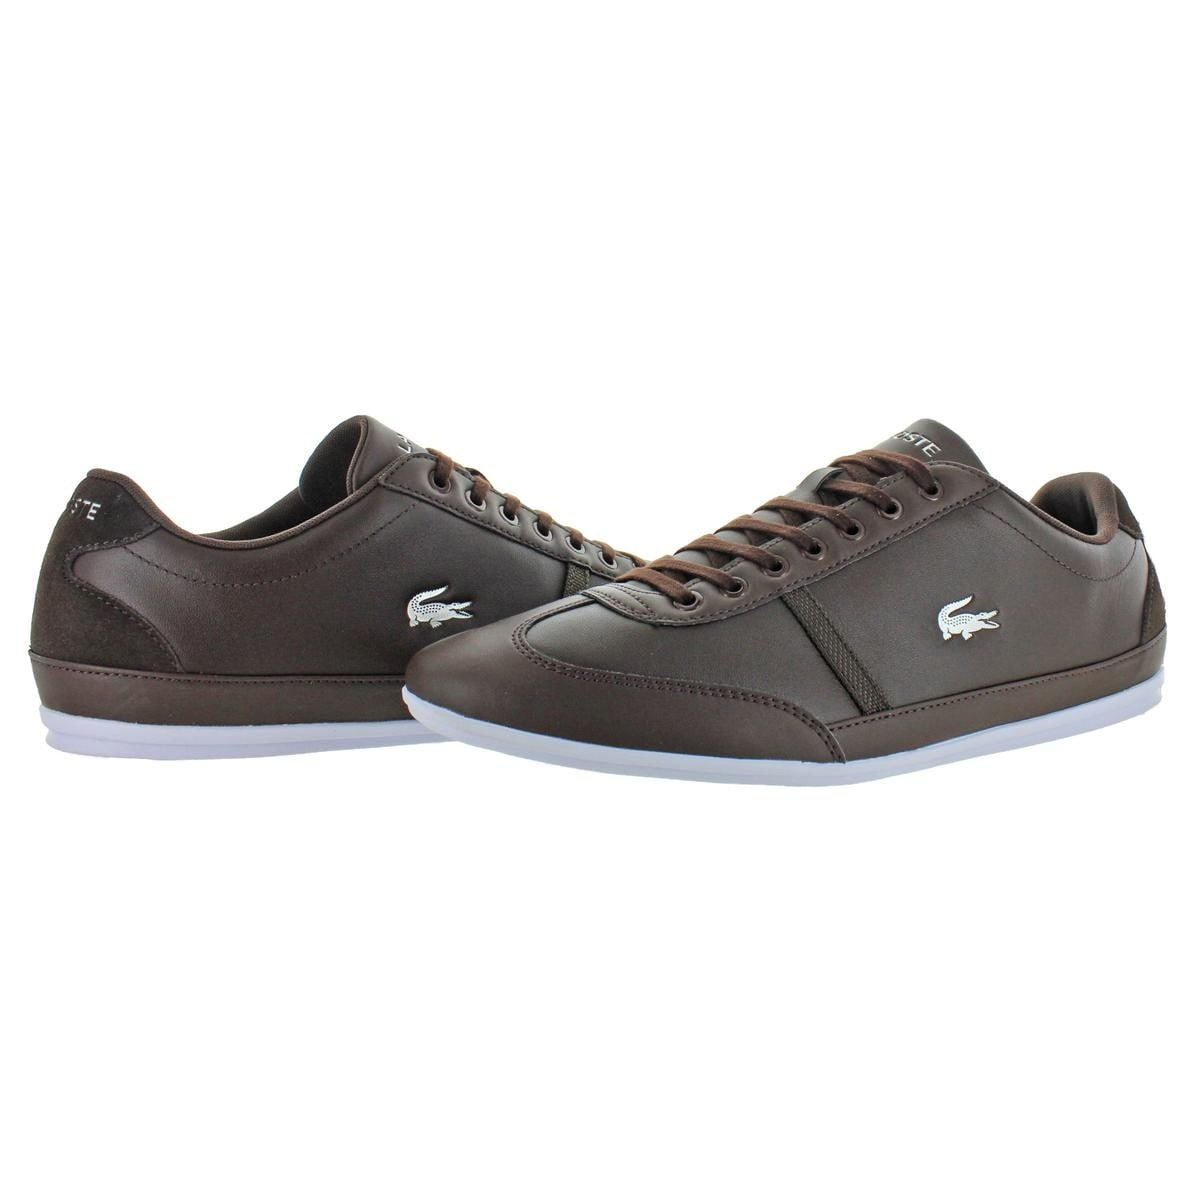 45fe6767a Shop Lacoste Mens Misano Sport 118 1 Casual Shoes Leather Ortholite ...